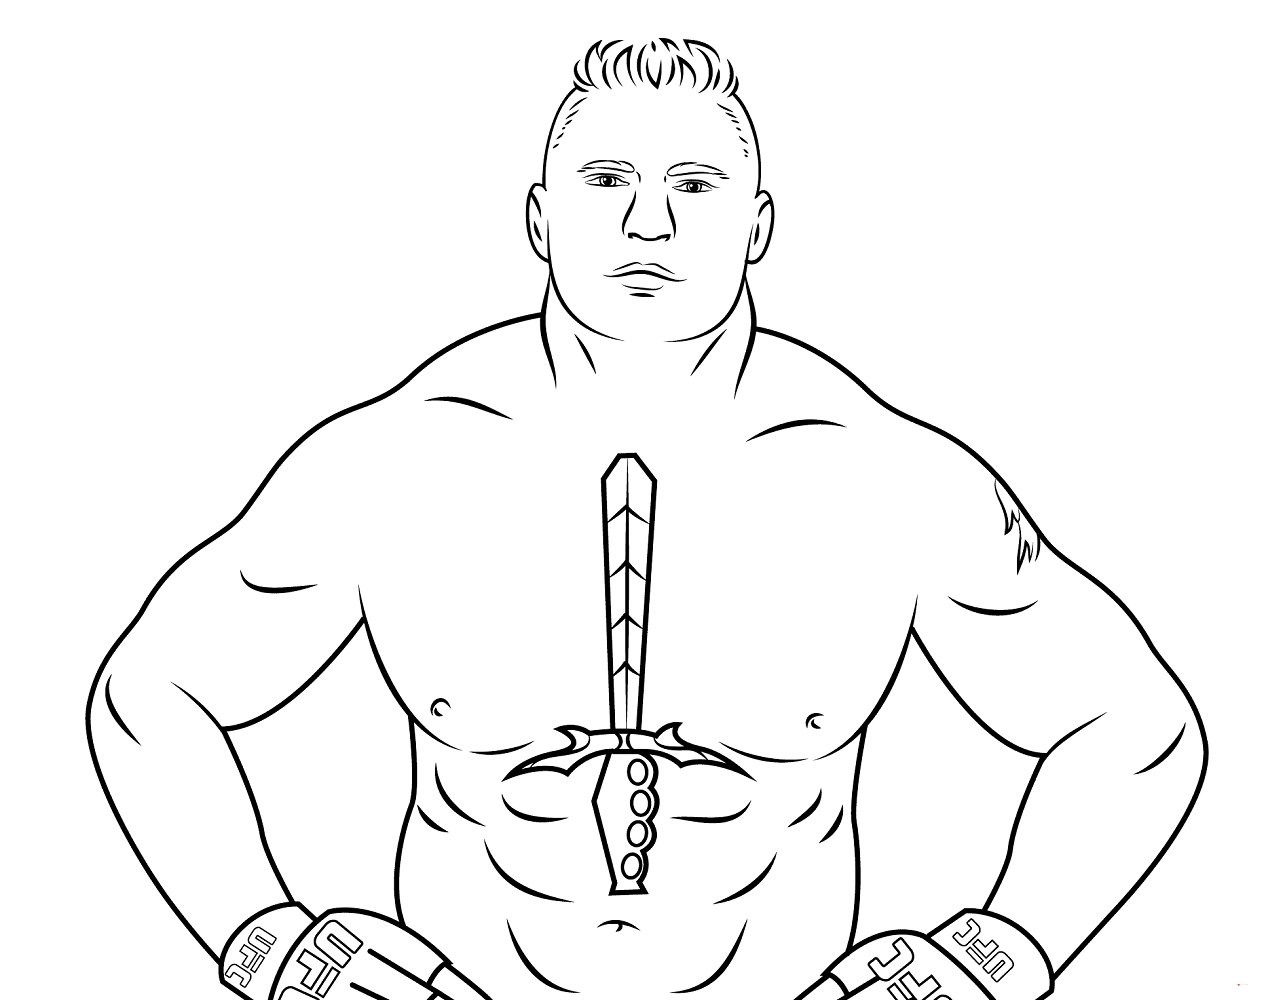 wwe colouring pictures wwe championship drawing at getdrawings free download pictures colouring wwe